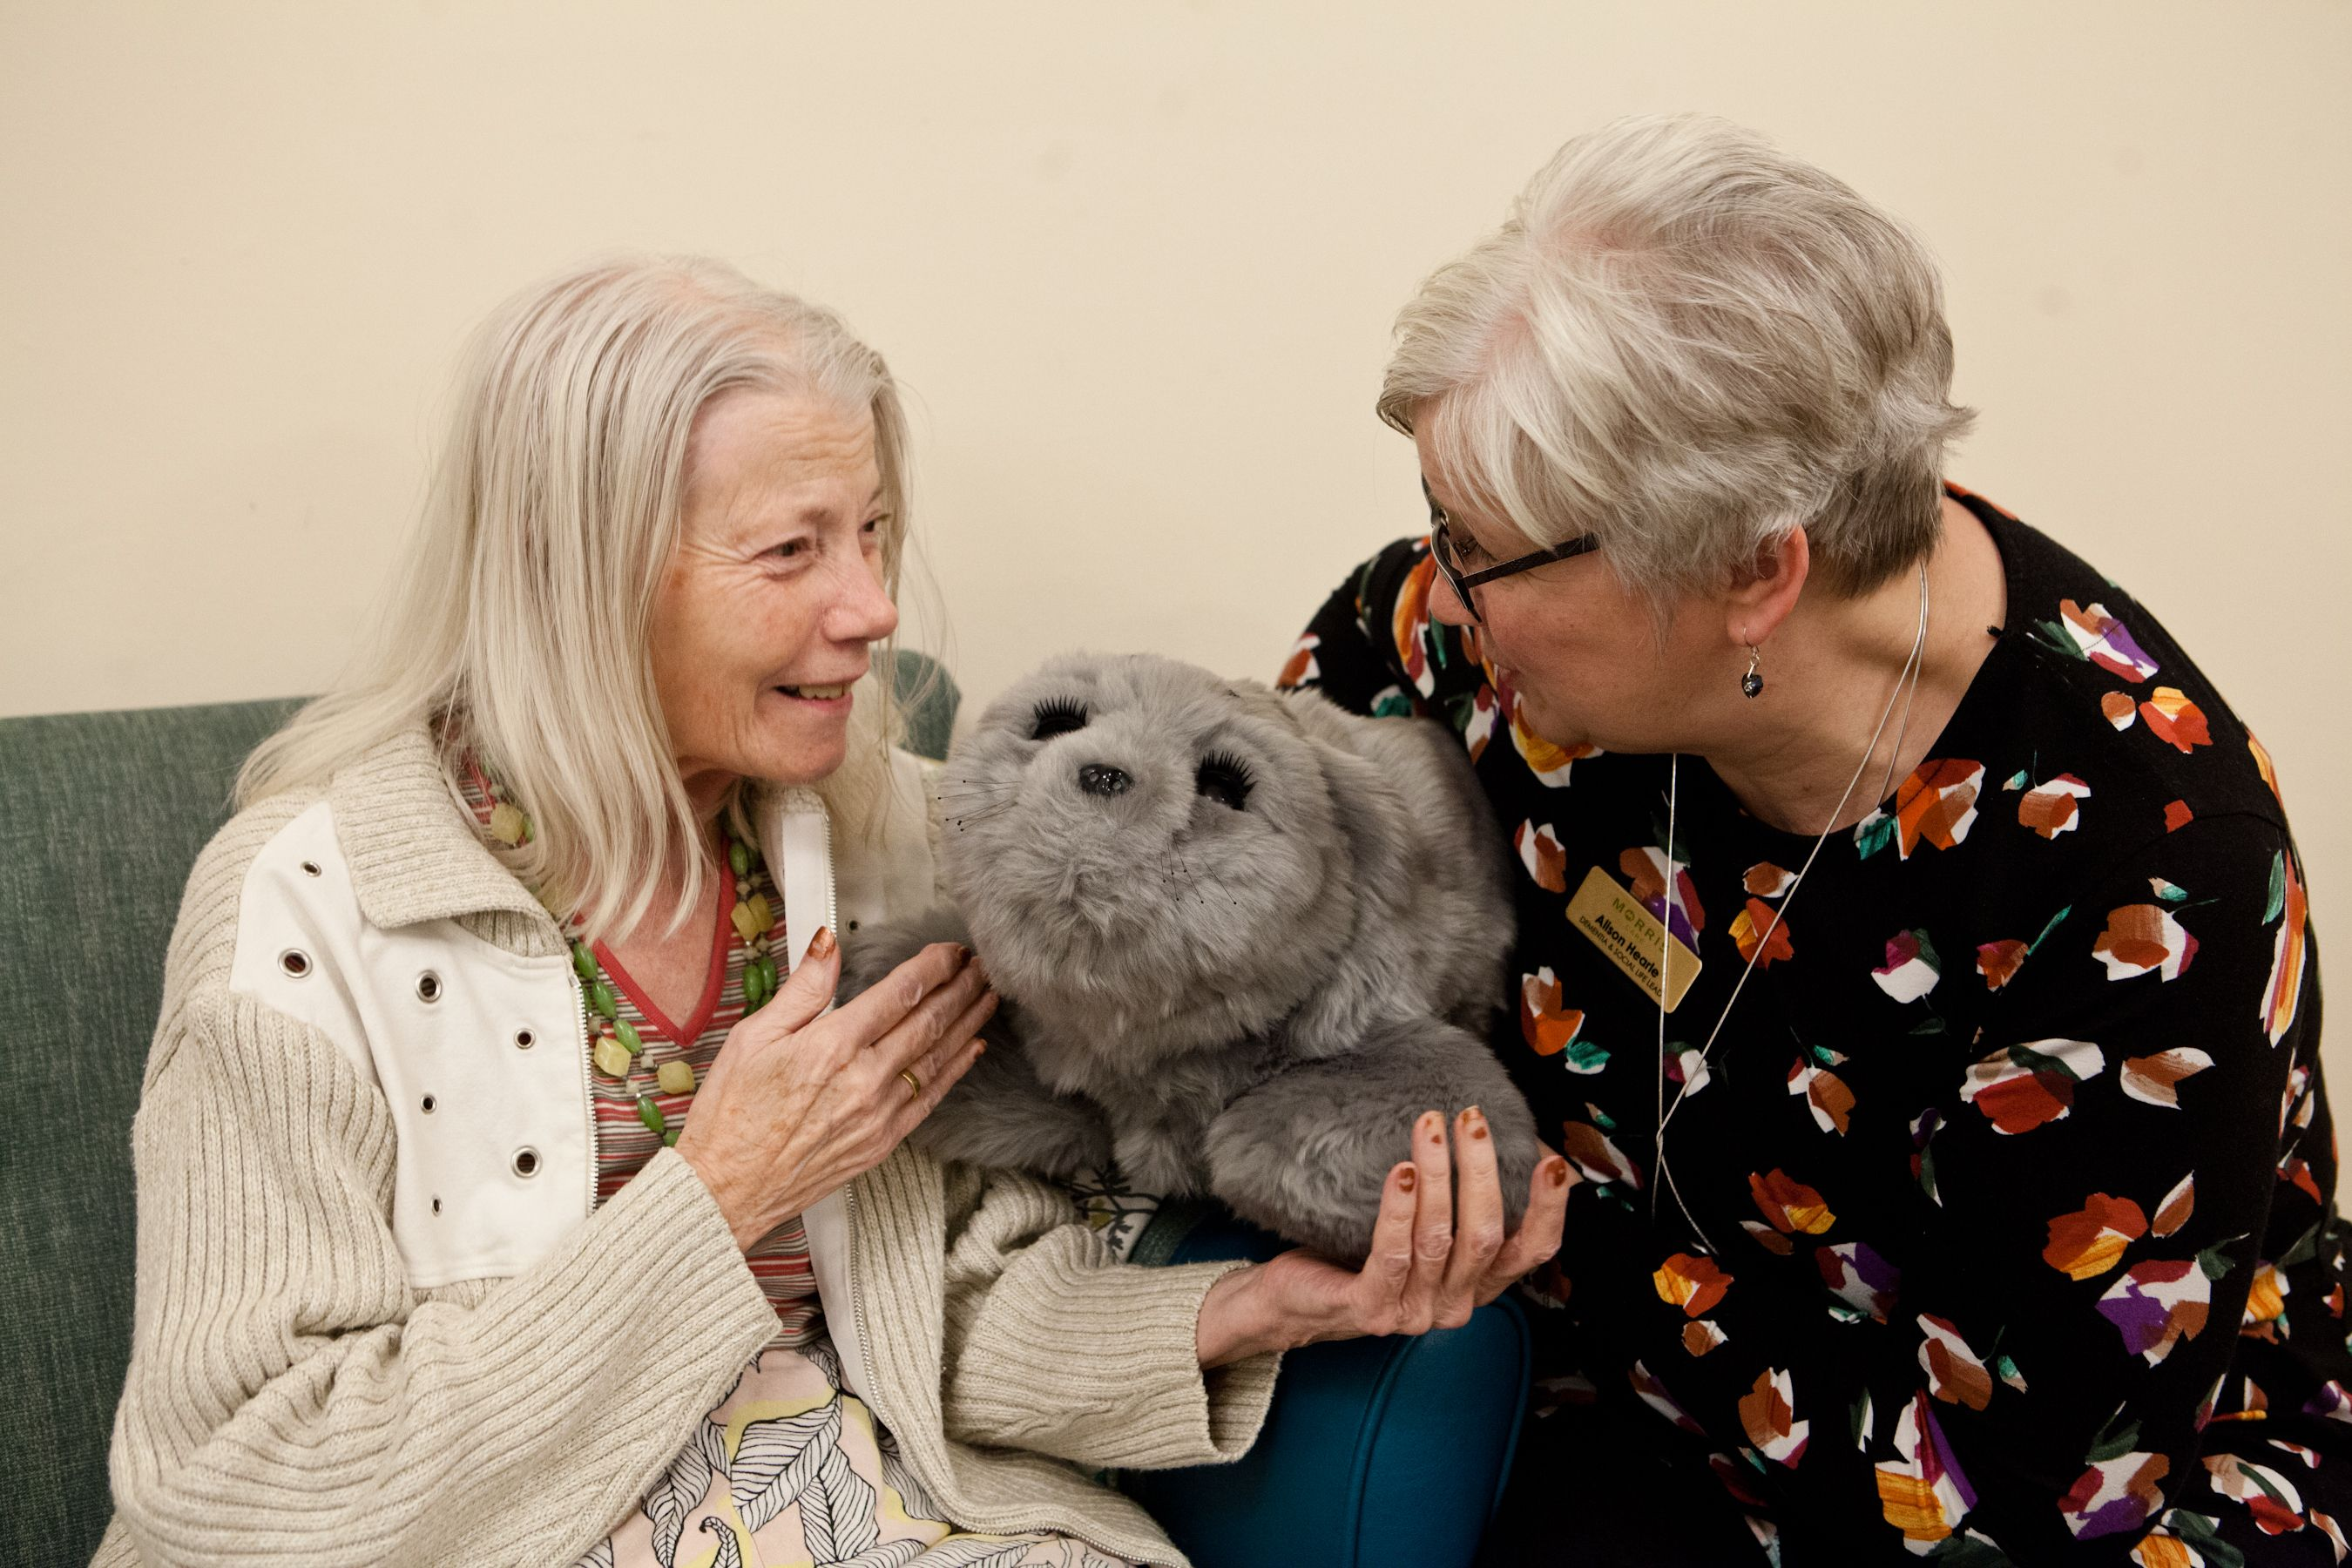 Nursing home welcomes new robotic seal 'therapy pet'